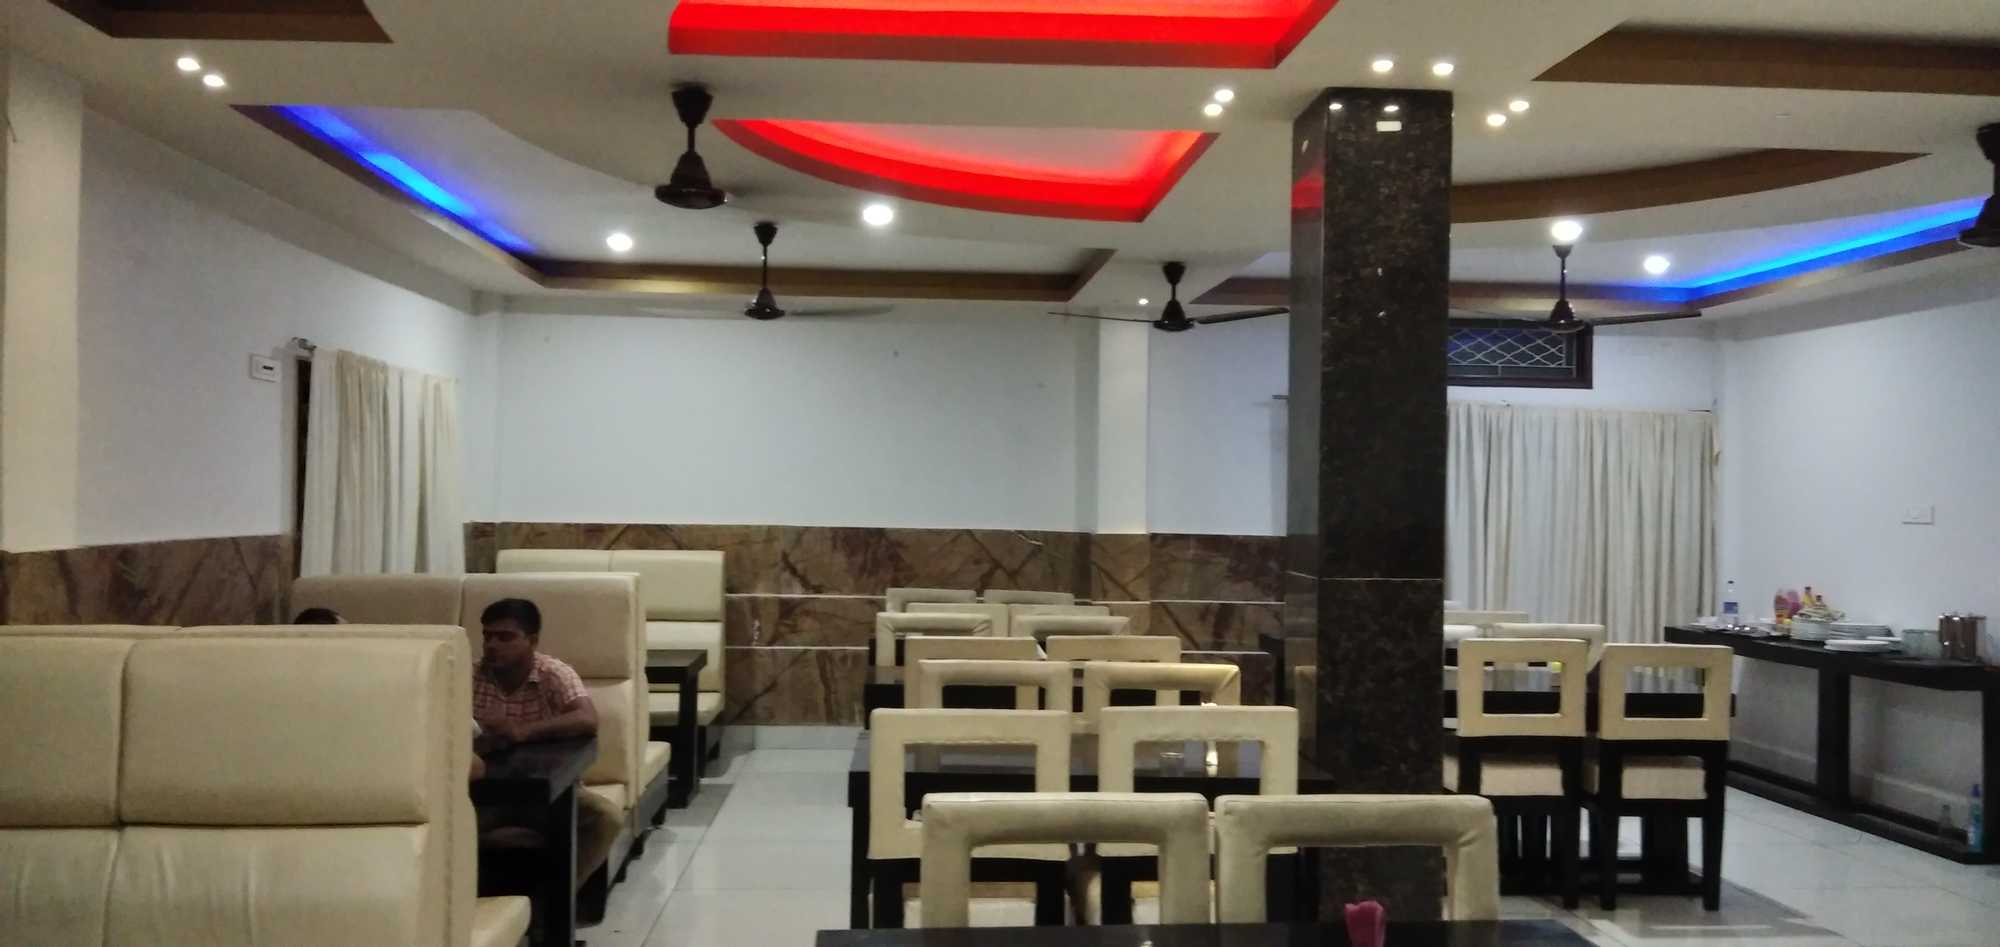 Top Restaurant In Siliguri That Every Food-Lover Must Try - Chillout Restaurant